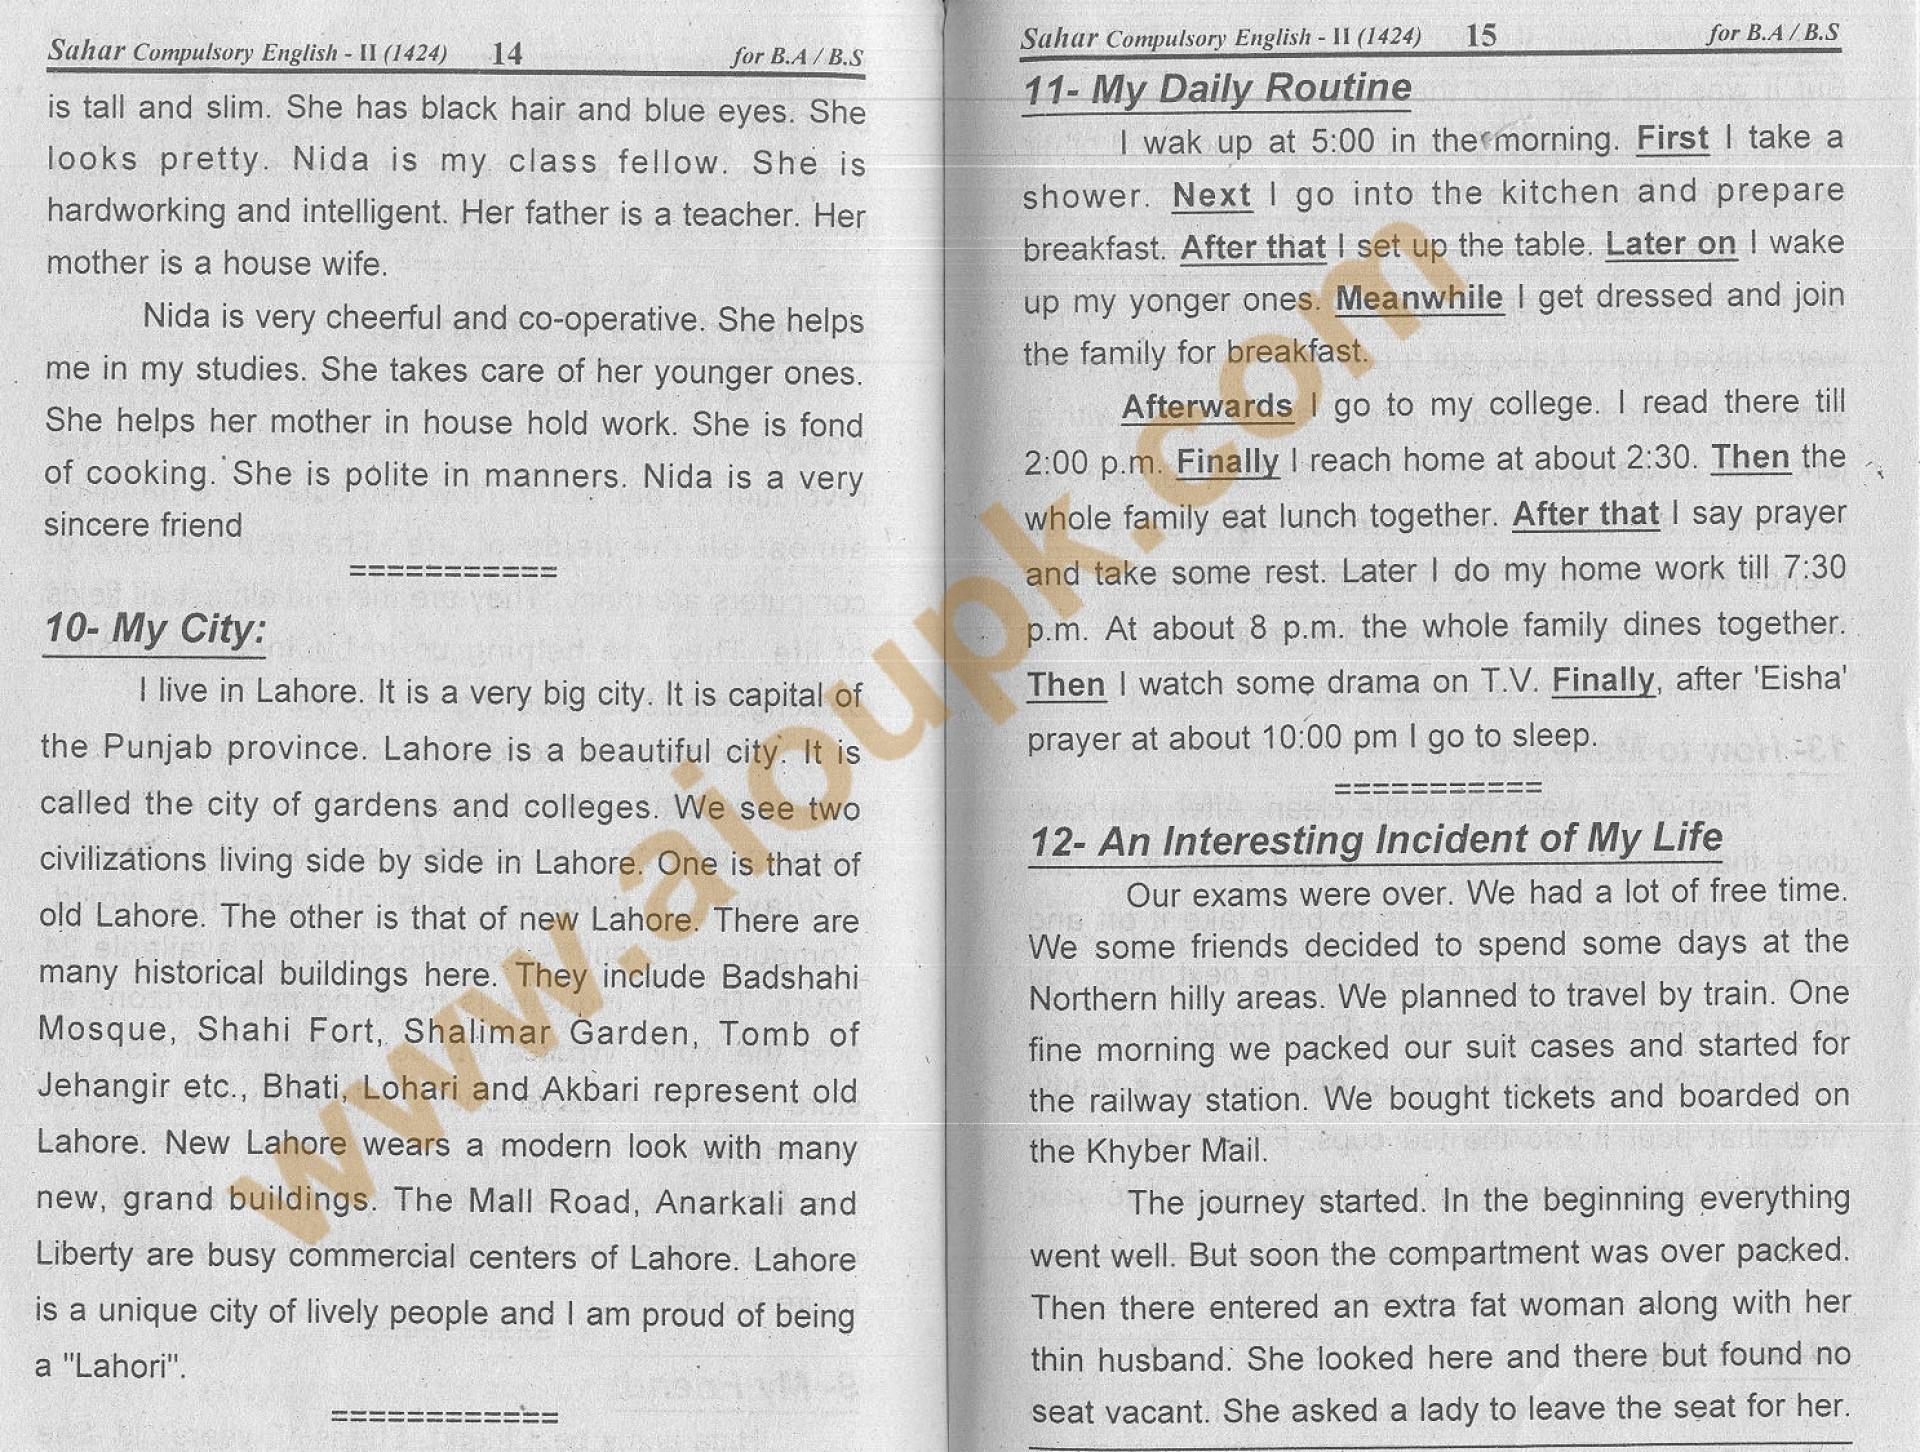 010 Essay Example English Essays For Aiou Unique Daily On Routine Of Housewife June 21 My Life 1920